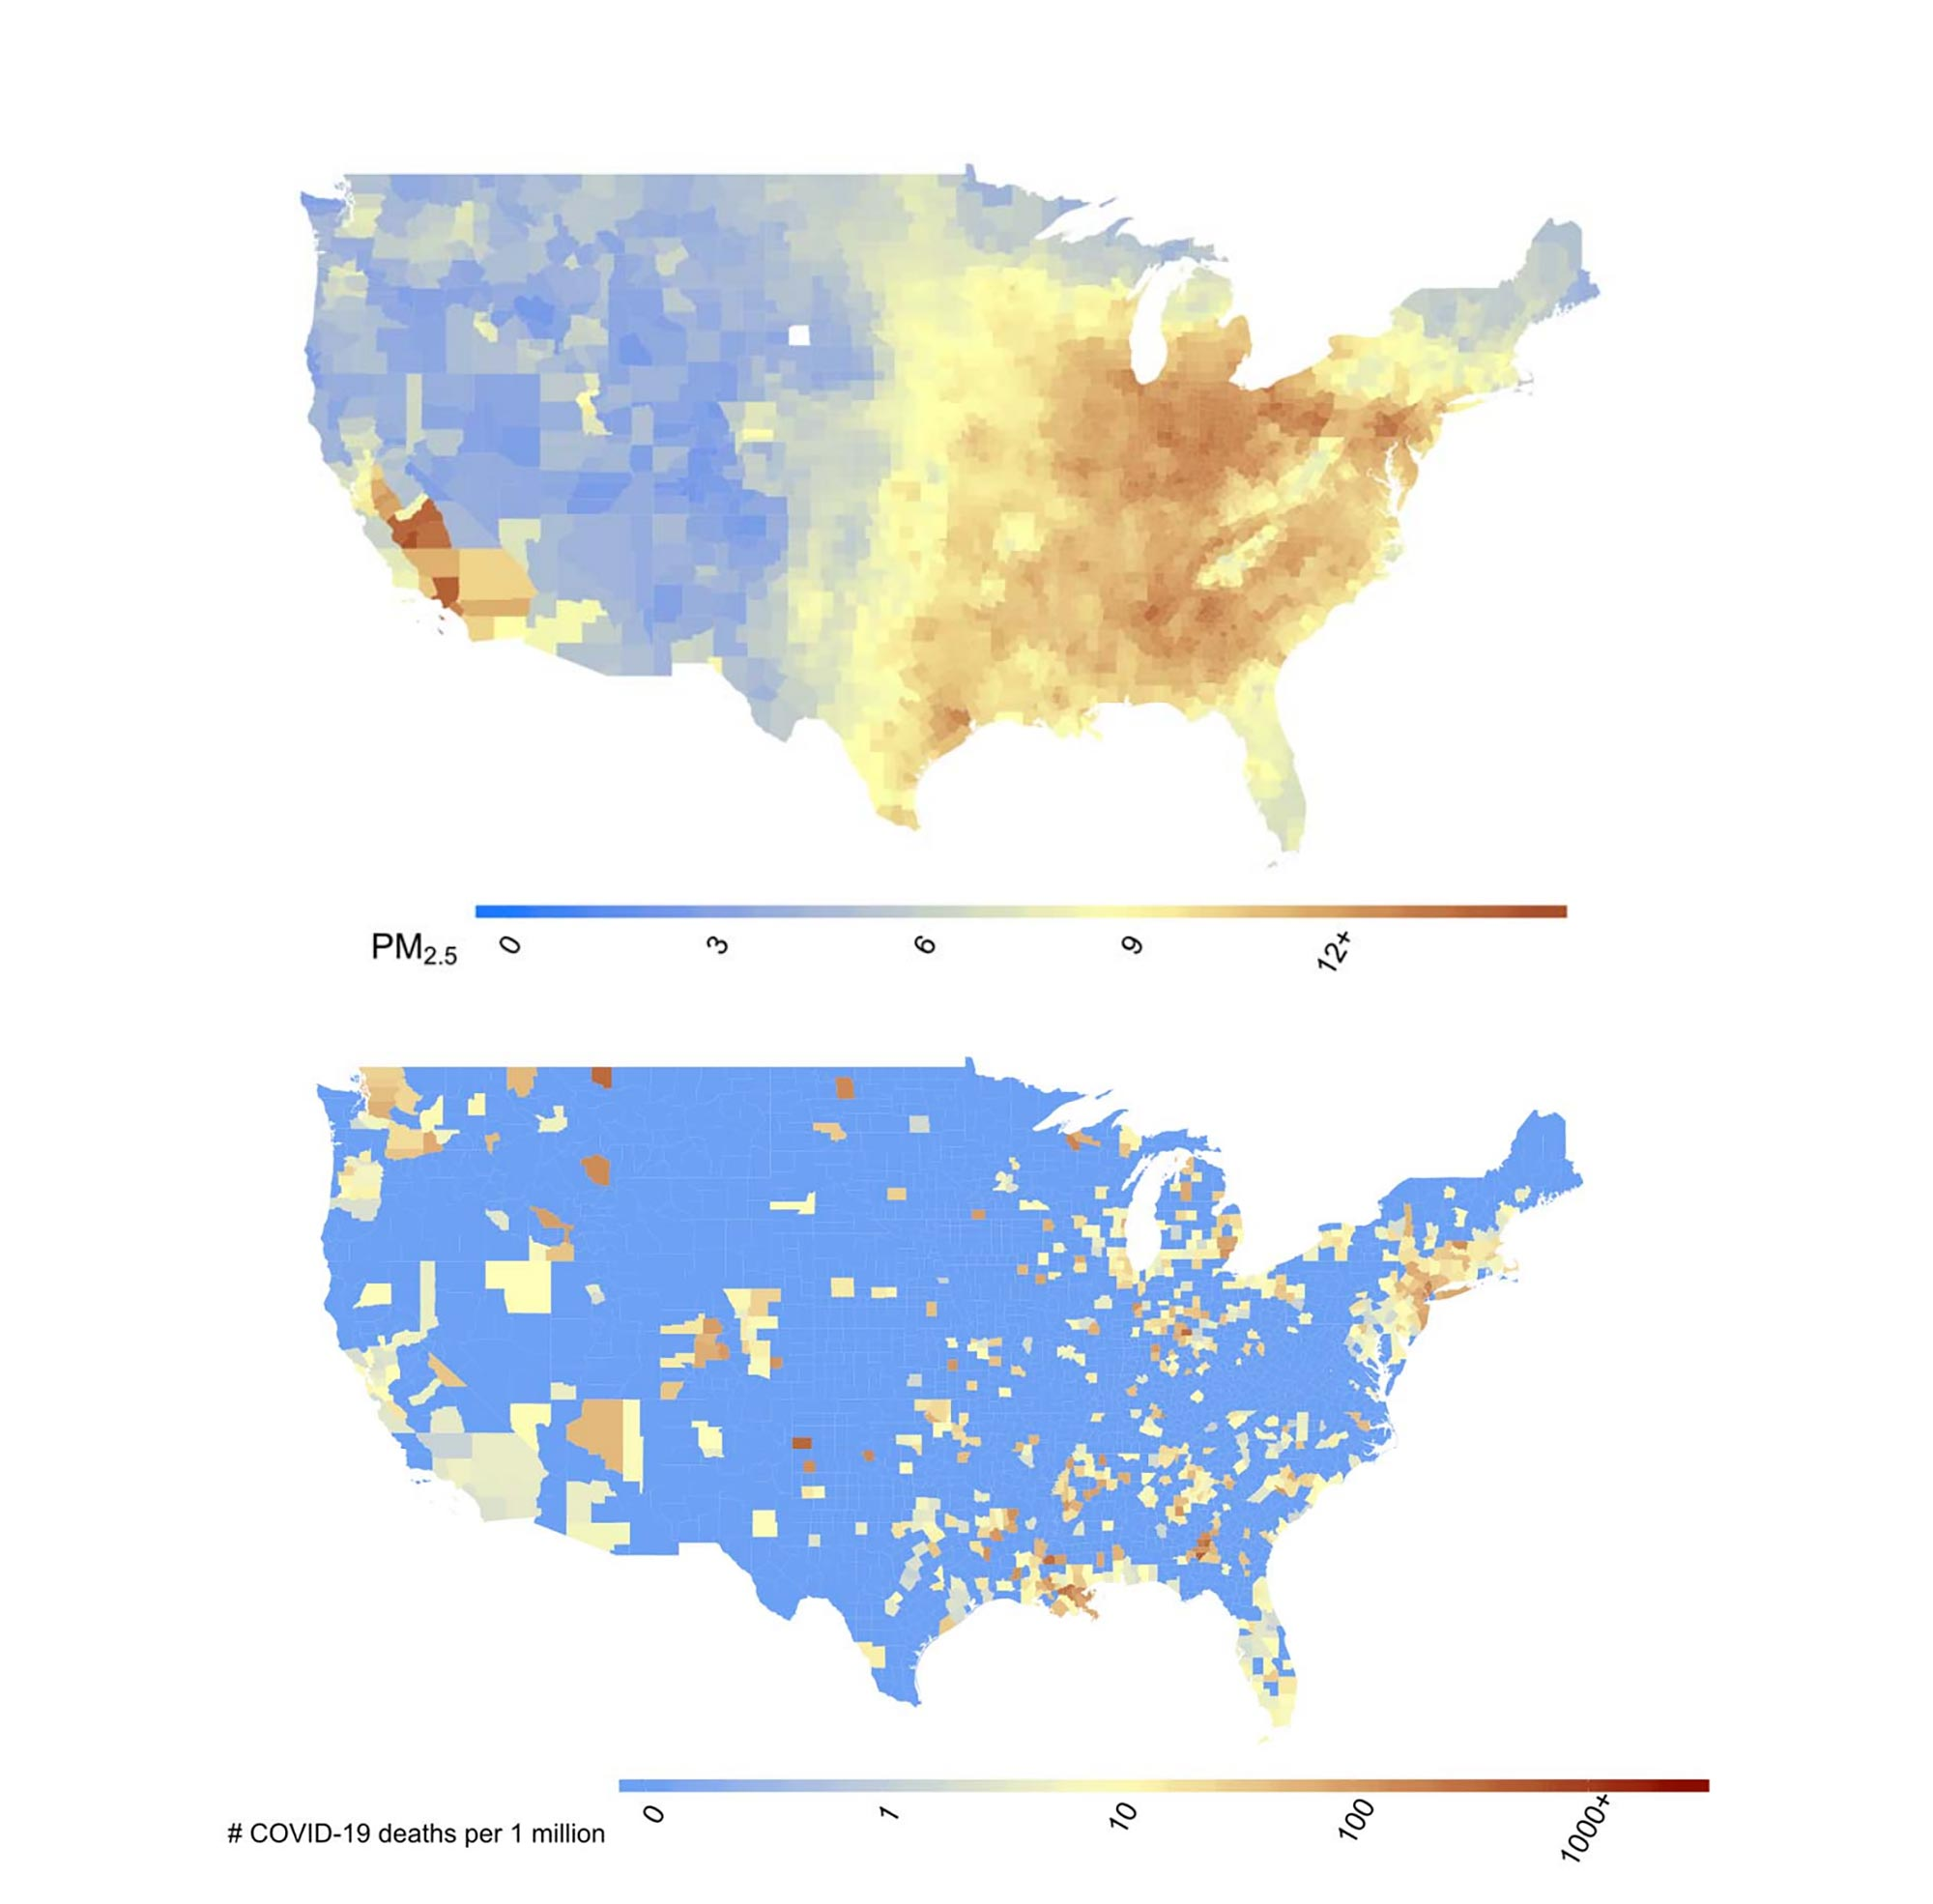 Maps show (a) county-level 17-year long-term average of PM2.5 concentrations (2000- 2016) in the US in g/m3 and (b) county-level number of COVID-19 deaths per one million population in the US up to and including April 4, 2020.